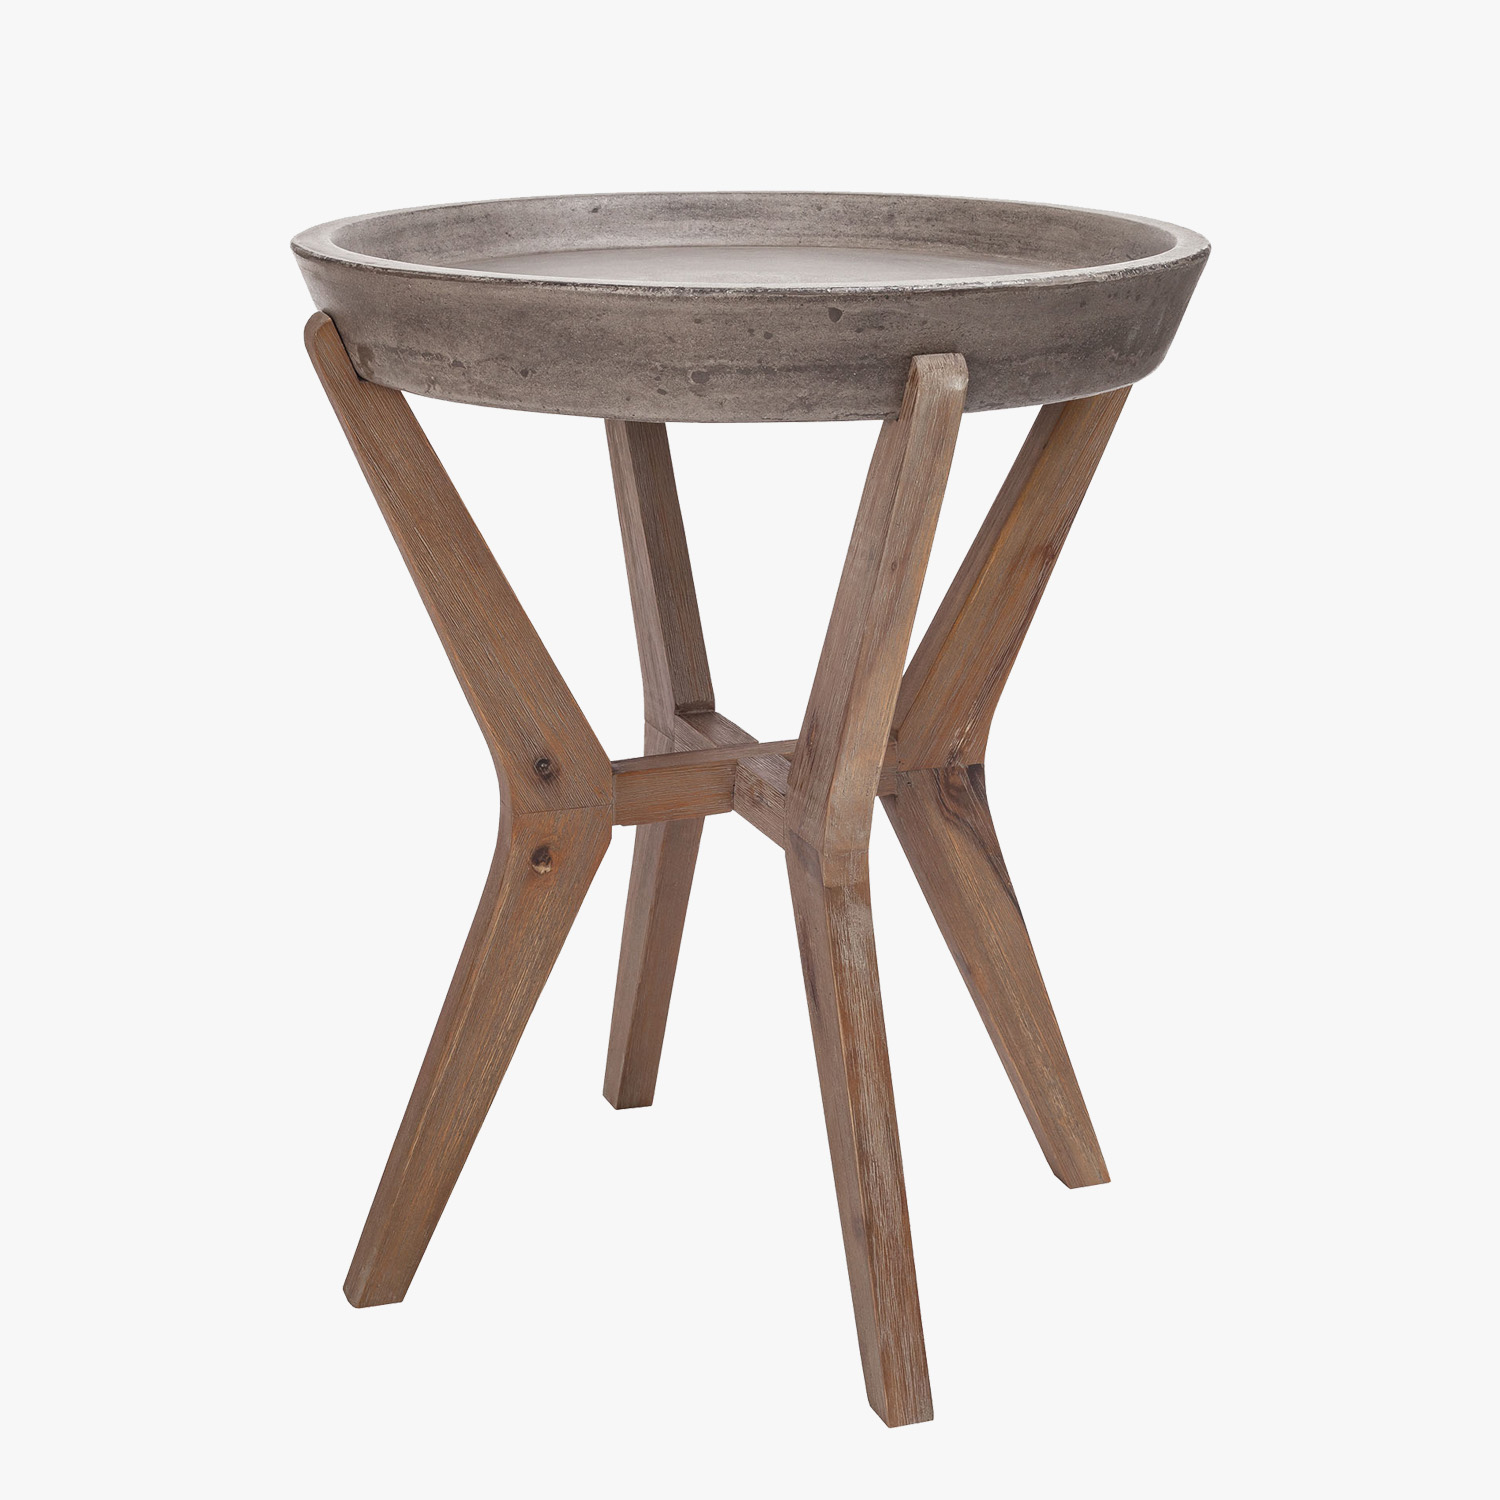 tulu concrete top side table accent tables dear keaton outdoor small patio and chairs black pedestal end pier desk mats colorful coffee west elm kitchen gothic furniture bunnings